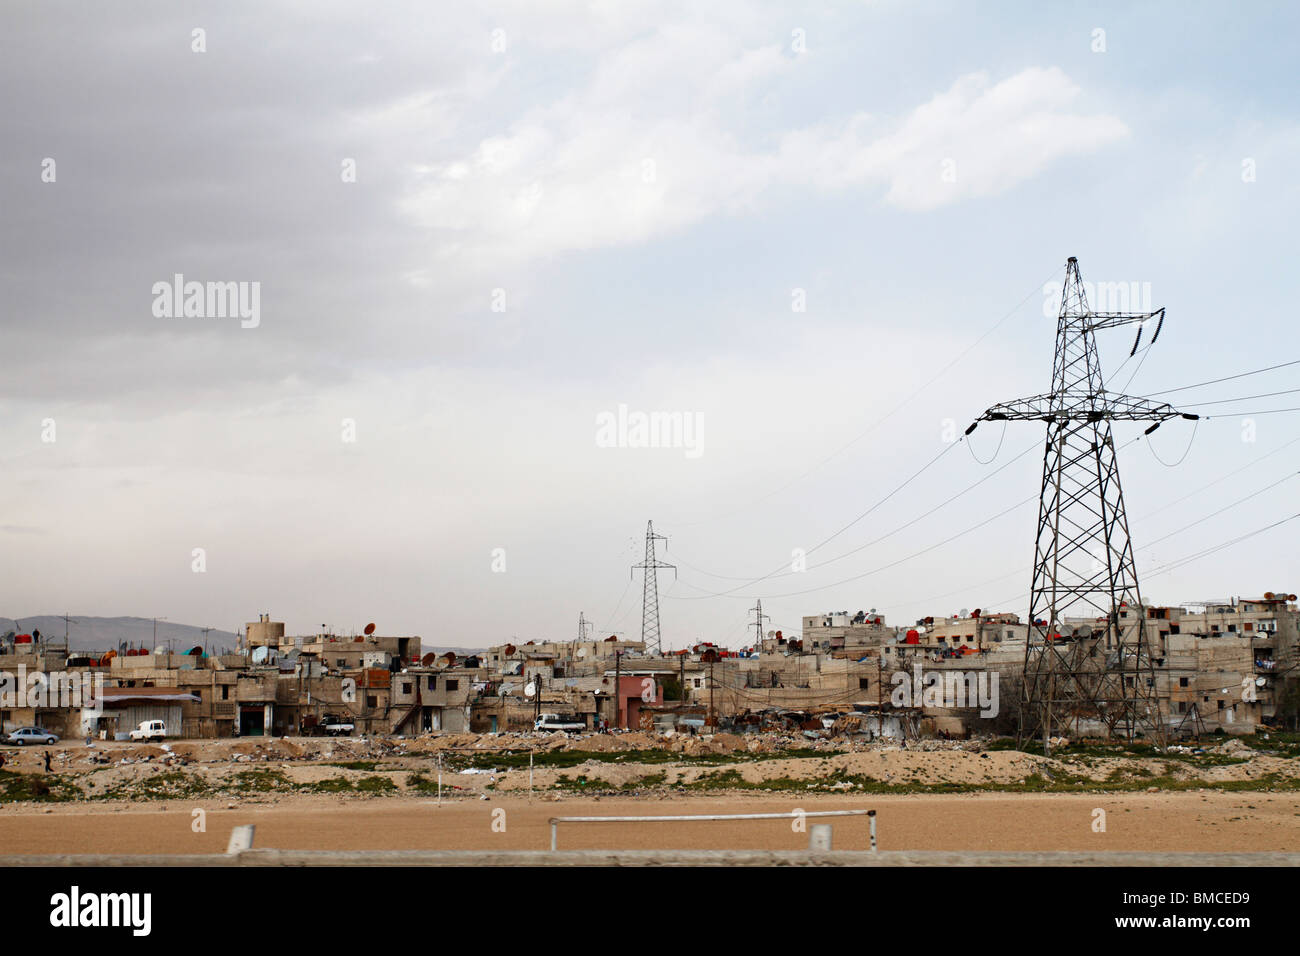 High Tension Wire Tension Stock Photos & High Tension Wire Tension ...